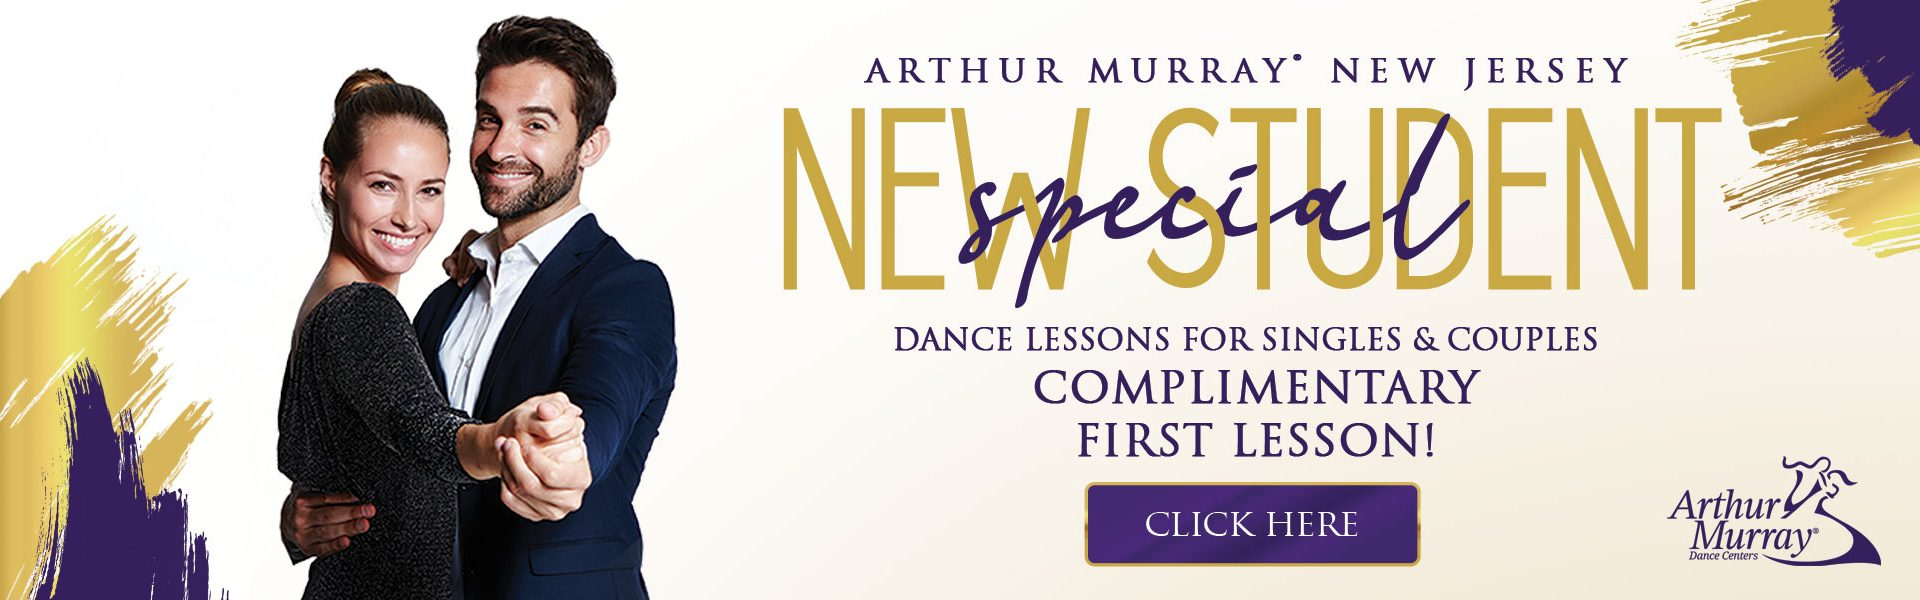 Arthur Murray New Jersey New Student Offer